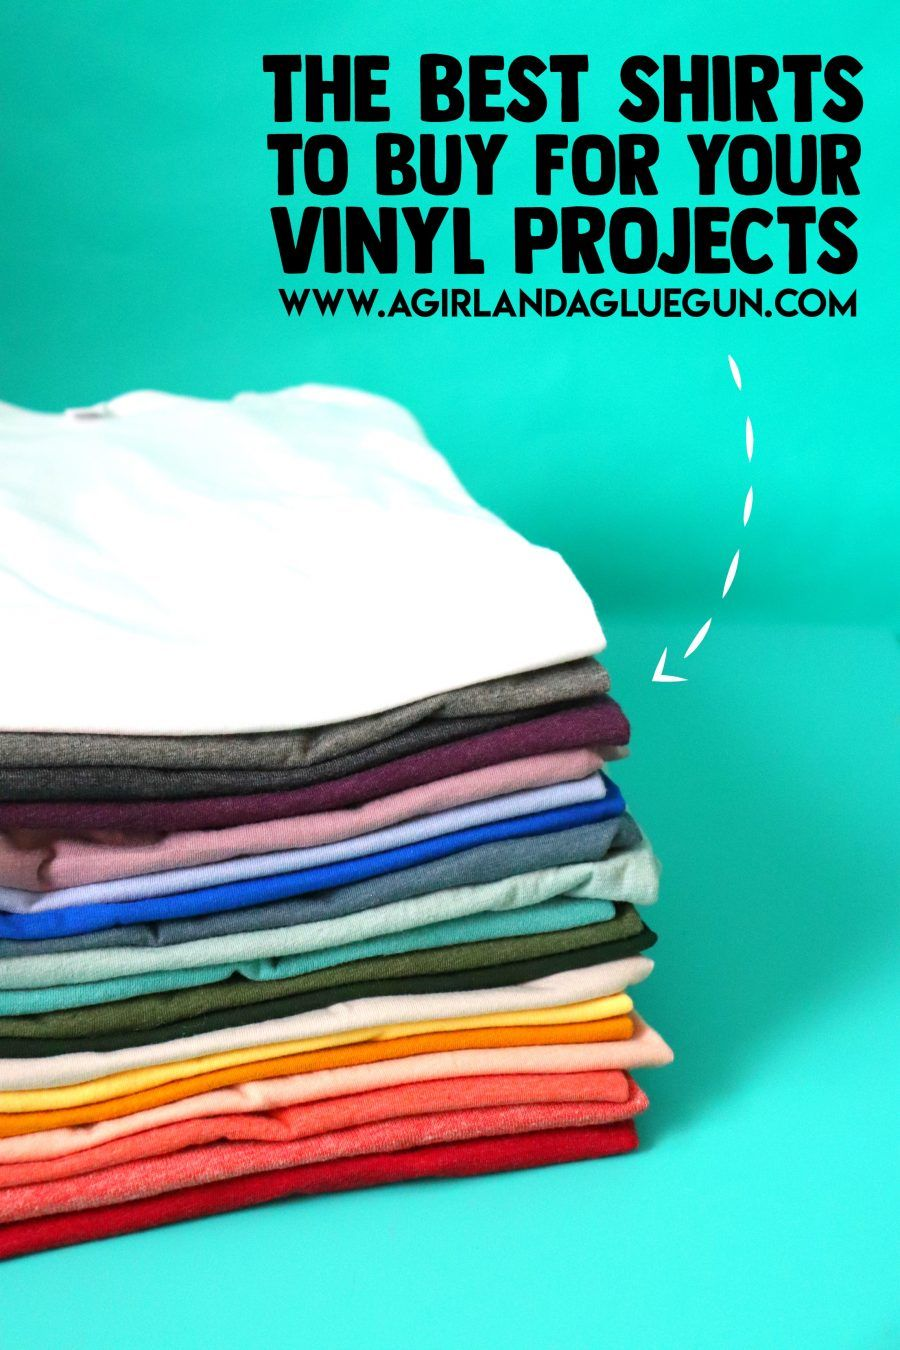 Where to buy the best shirts for Vinyl - A girl an